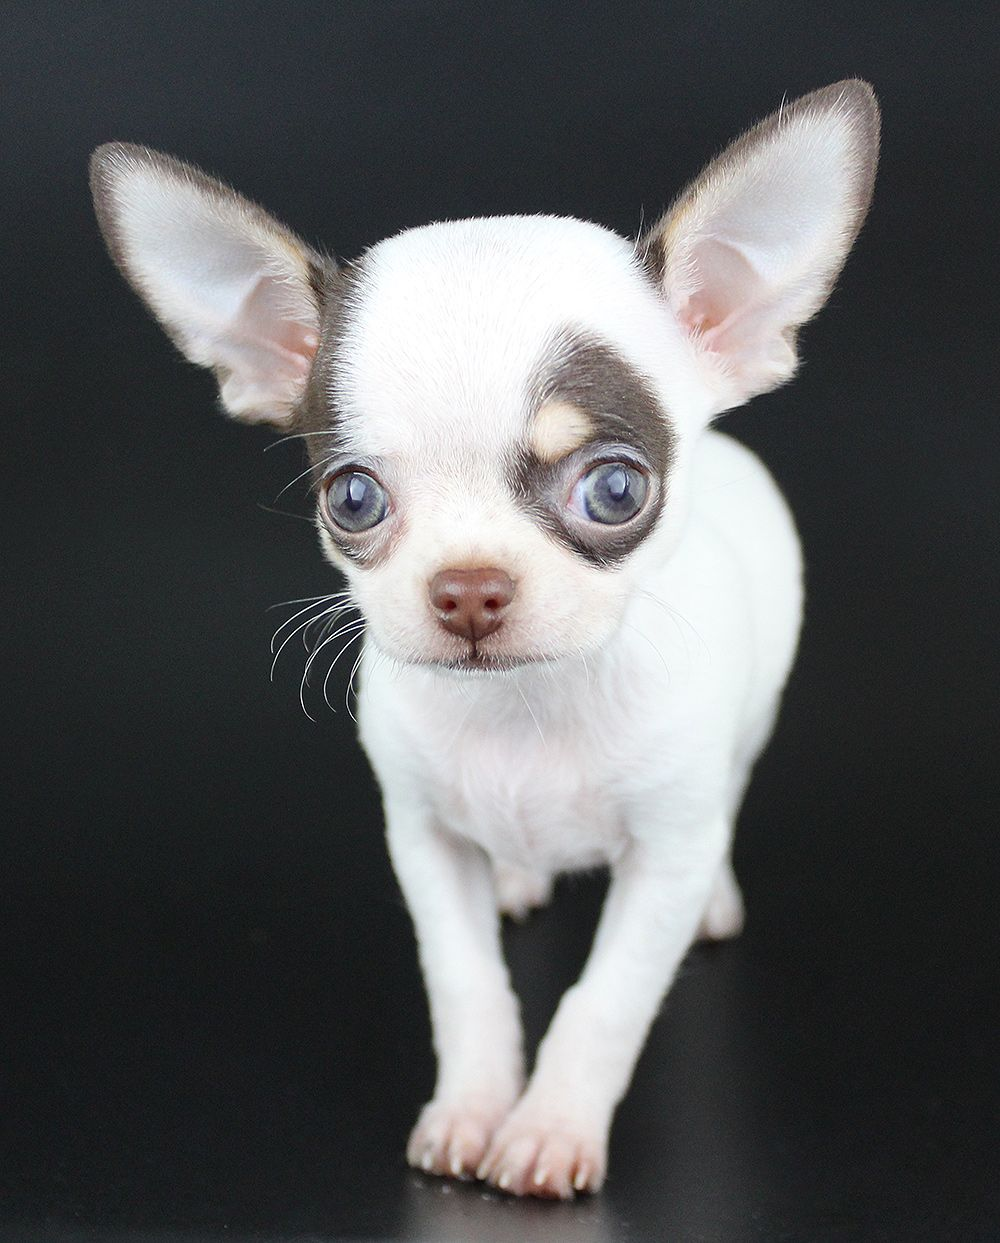 Pin By Peggy Ritz On Chichuahua Chihuahua Puppies Puppies